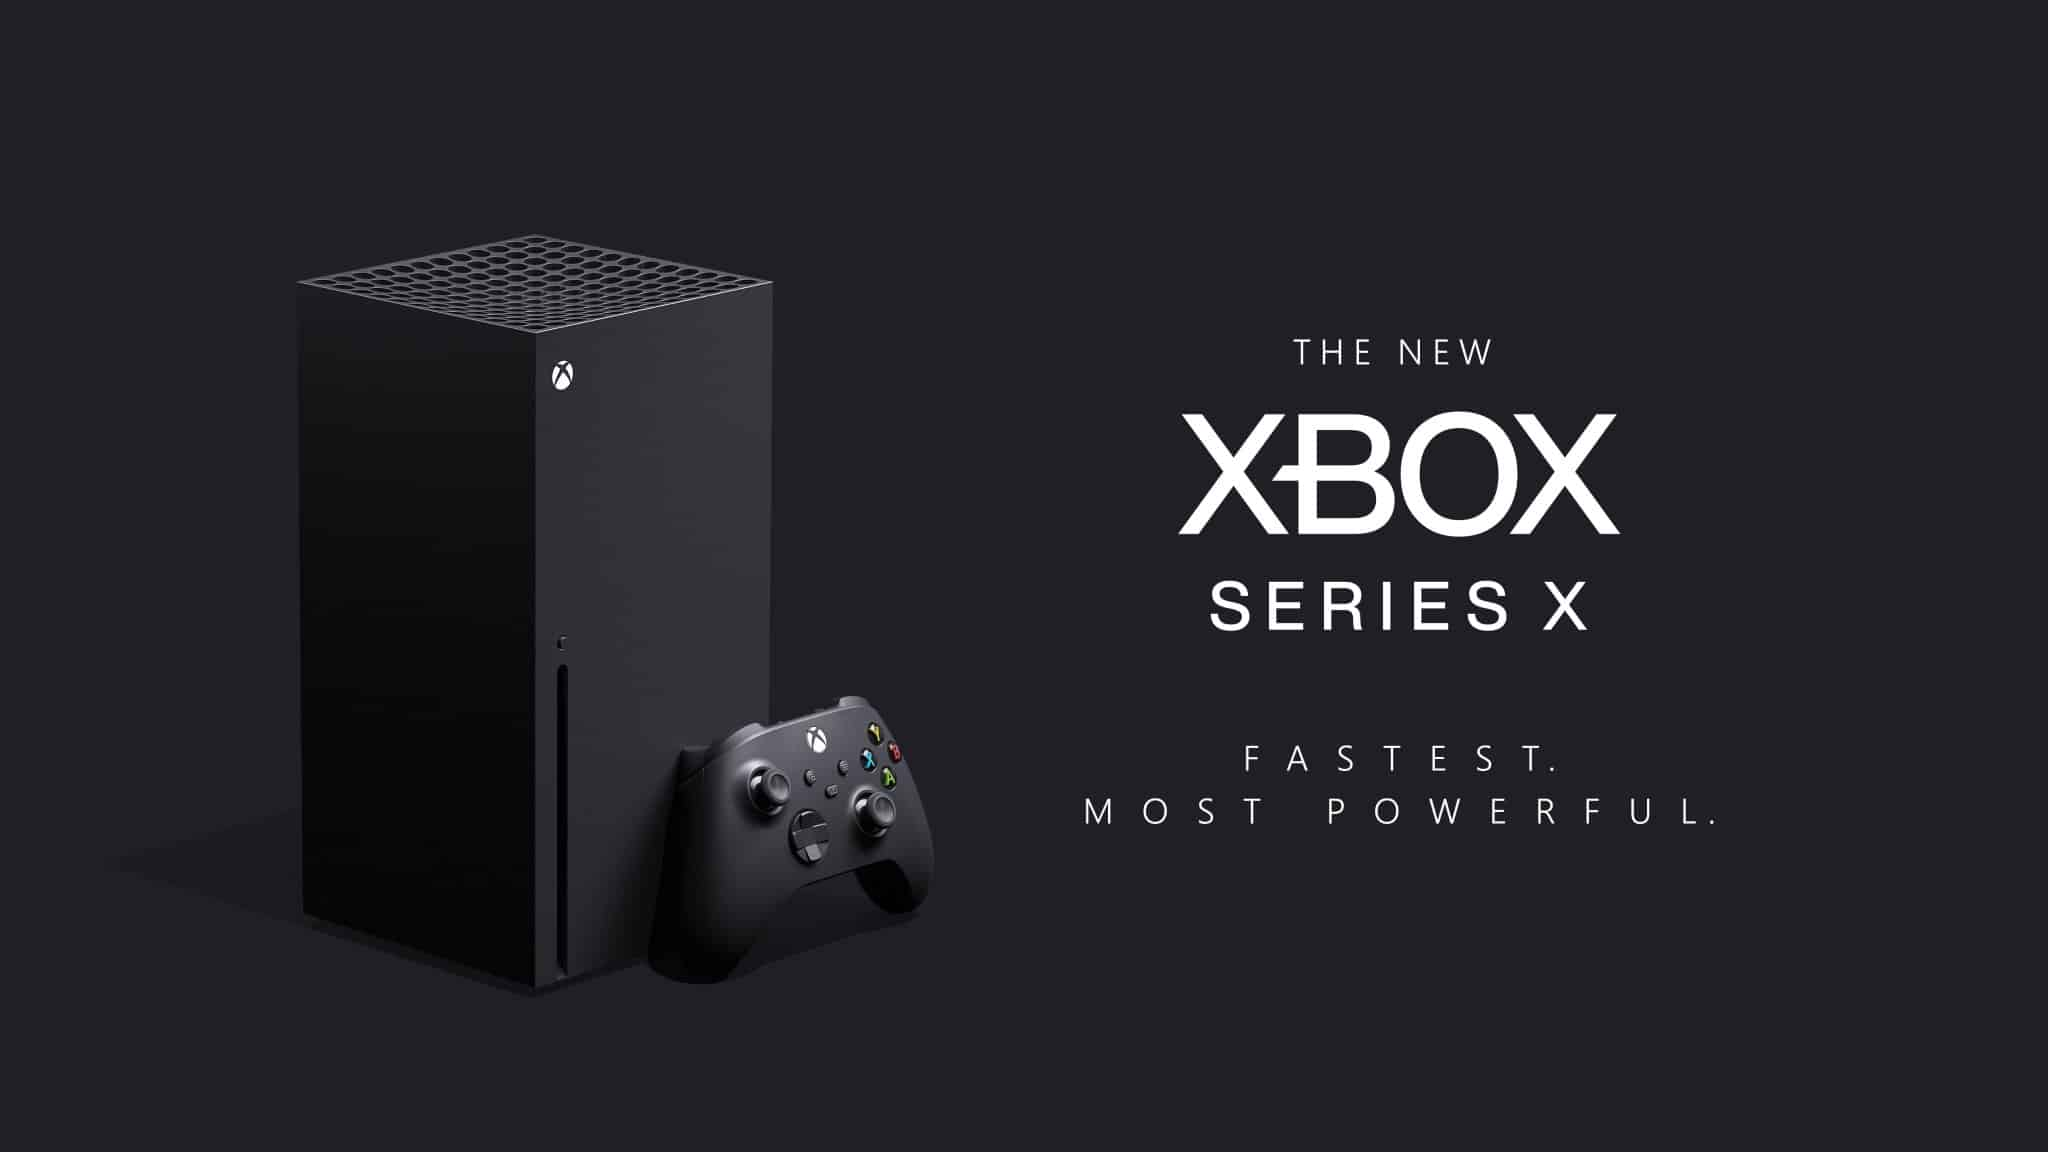 Xbox Series X is the new name for Project Scarlett